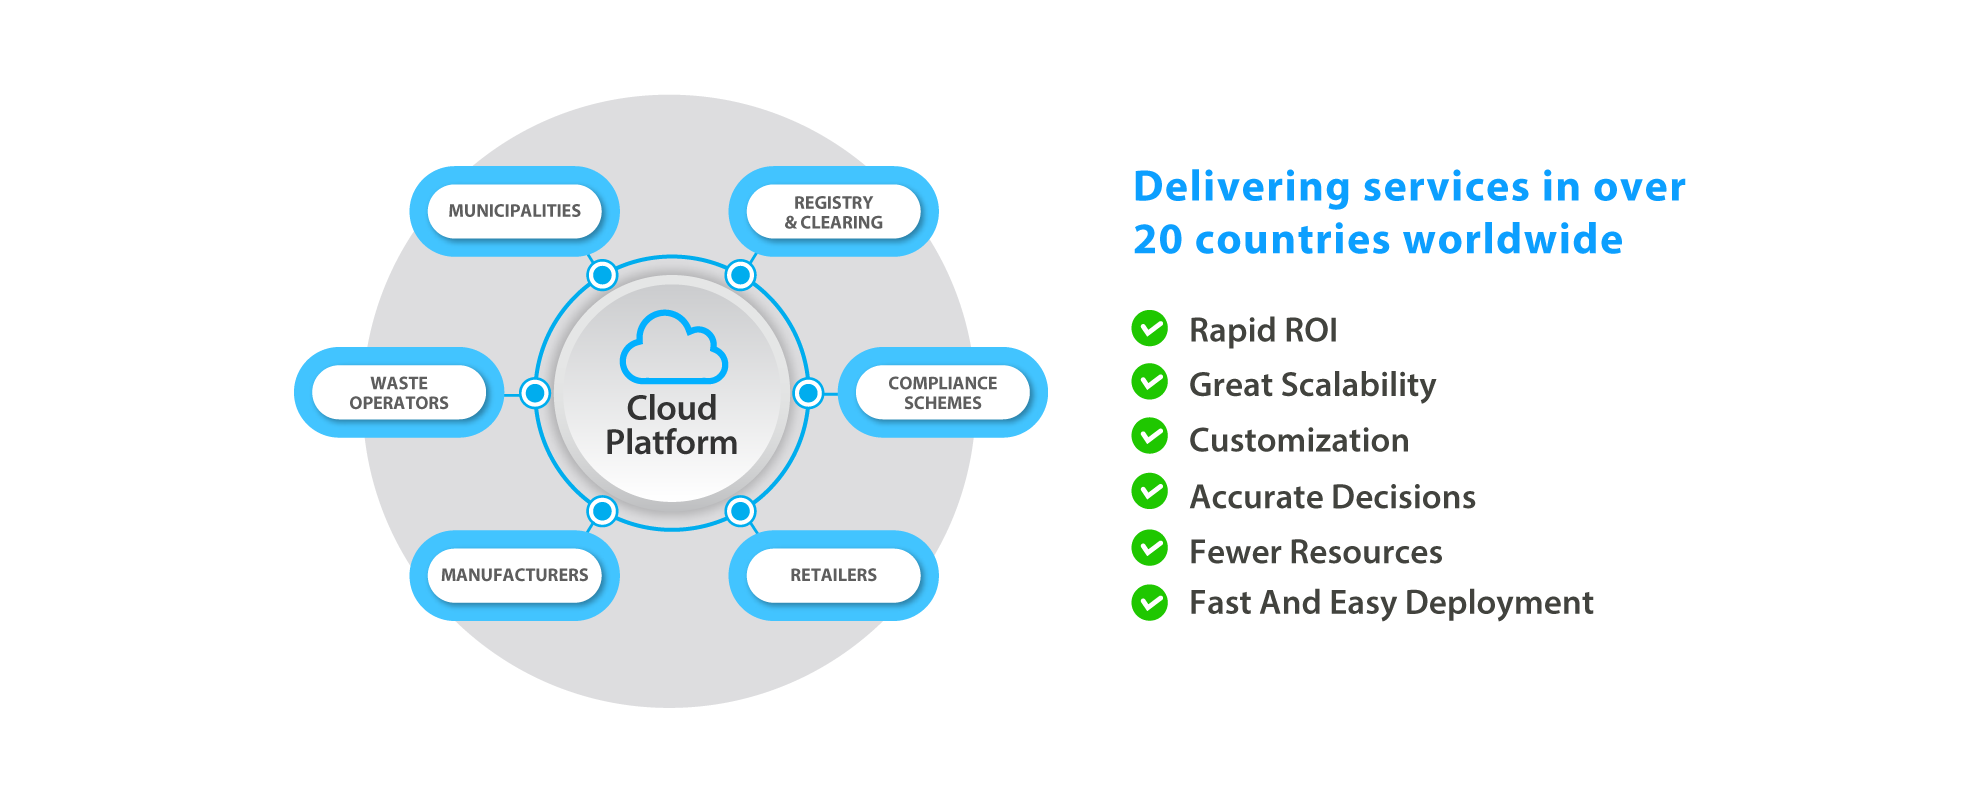 Prodigentia Cloud Platform | Municipalities, Registry & Clearing, Compliance Schemes, Retailers, Manufacturers and Waste Operators. Delivering services in over 20 countries worldwide. Rapid ROI, Great Scalability, Customization, Accurate Decisions, Fewer Resources, Fast And Easy Deployment